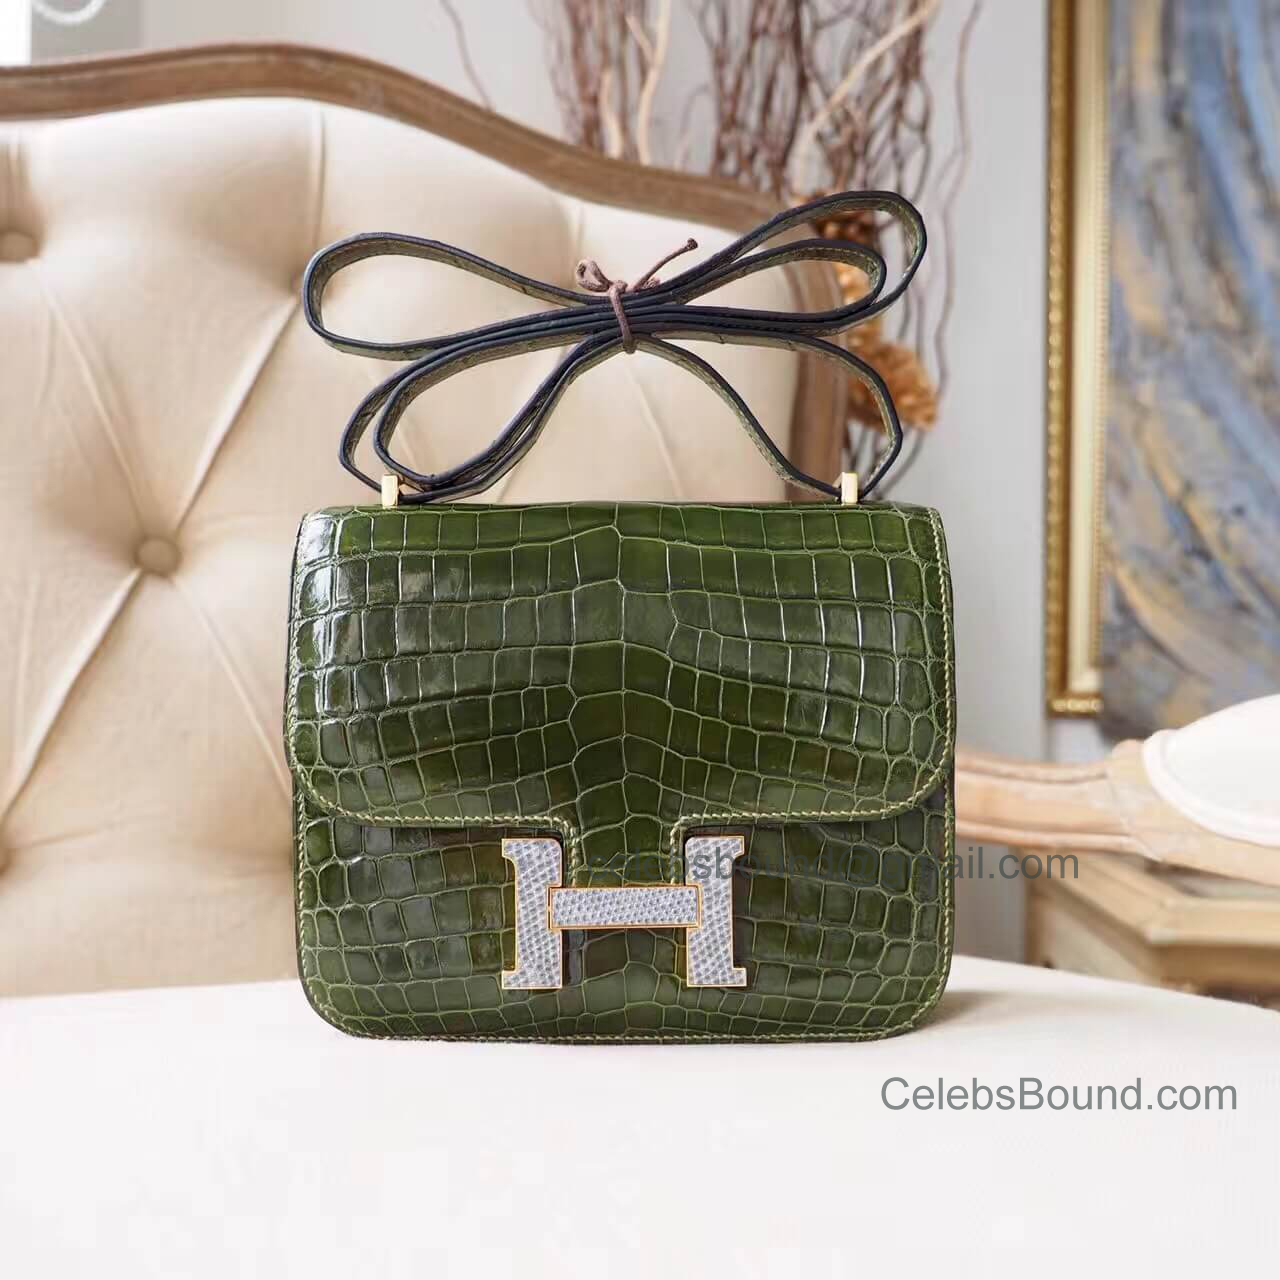 Hermes Mini Constance 18 in Vert Veronese Shiny Nile Croc Lizard Buckle GHW